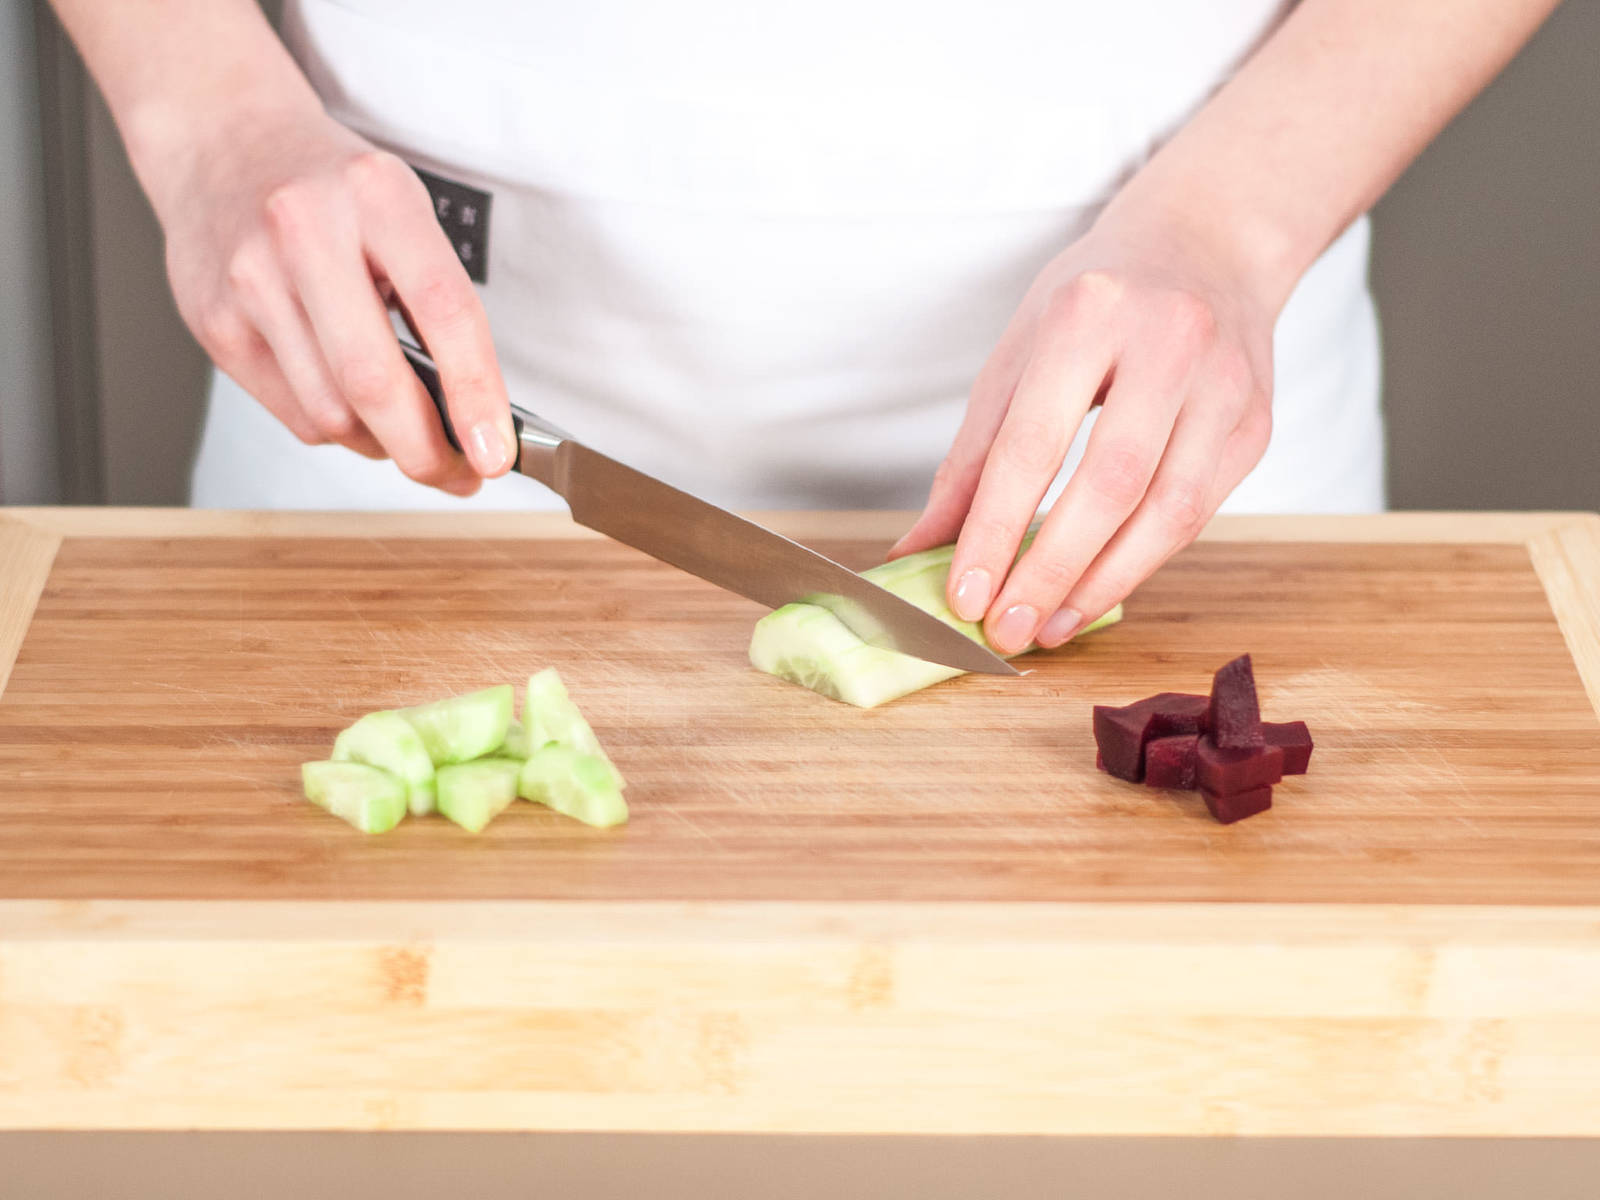 Peel and slice cucumber. Dice red beet.